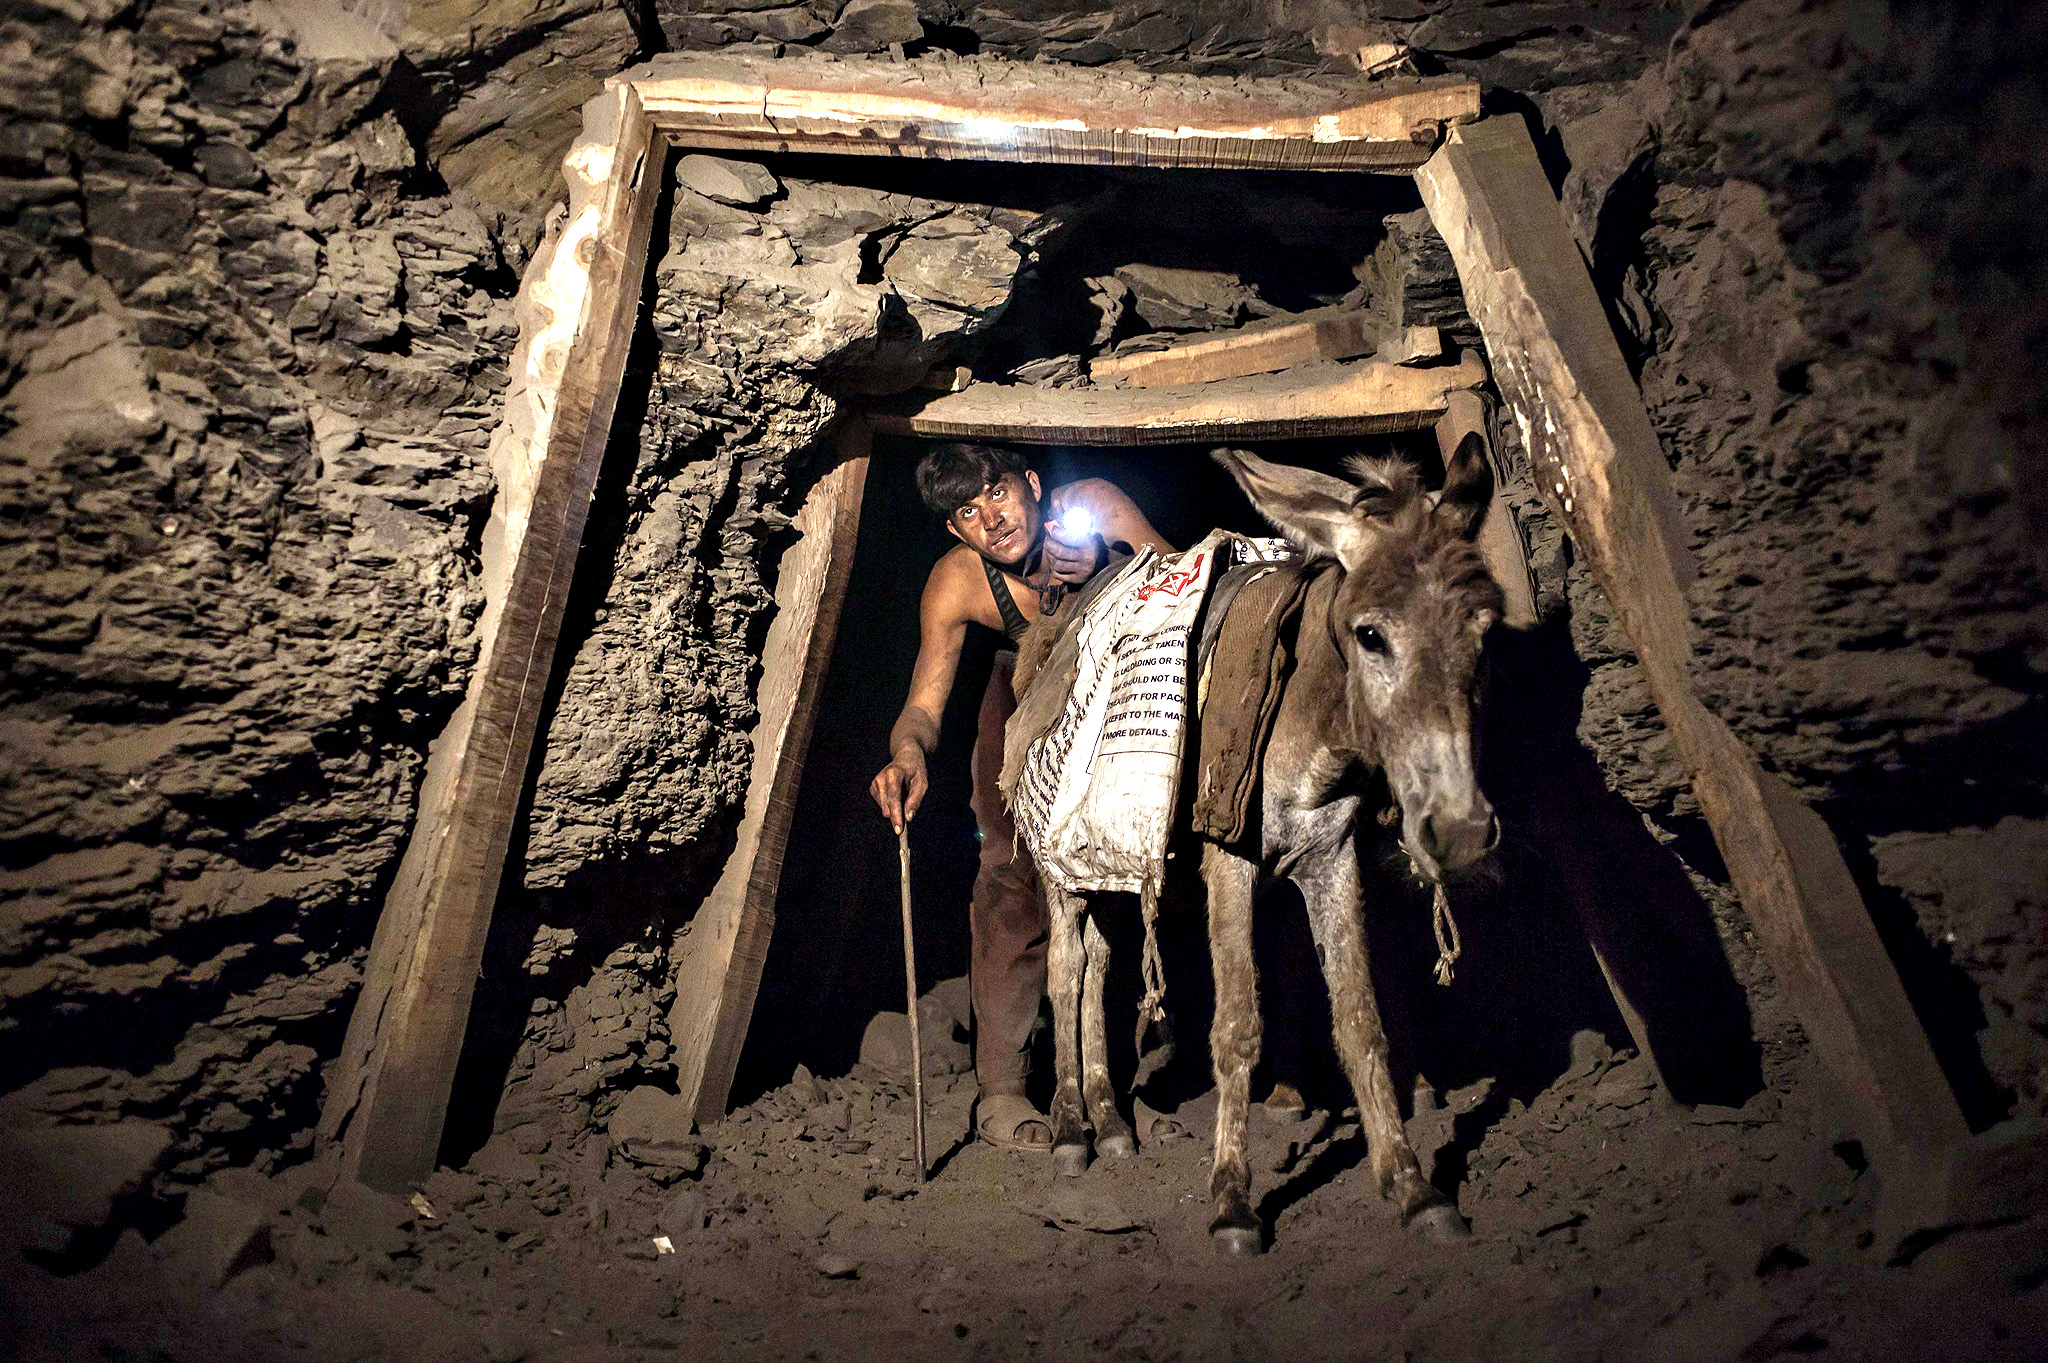 A miner with a donkey makes his way through the low and narrow tunnel leading out of a coal mine in Choa Saidan Shah in Punjab province, April 29, 2014. Workers at this mine in Choa Saidan Shah dig coal with pick axes, break it up and load it onto donkeys to be transported to the surface. Employed by private contractors, a team of four workers can dig about a ton of coal a day, for which they earn around $10 to be split between them. The coalmine is in the heart of Punjab, Pakistan's most populous and richest province, but the labourers mostly come from the poorer neighbouring region of Khyber Pakhtunkhwa. Picture taken April 29, 2014.